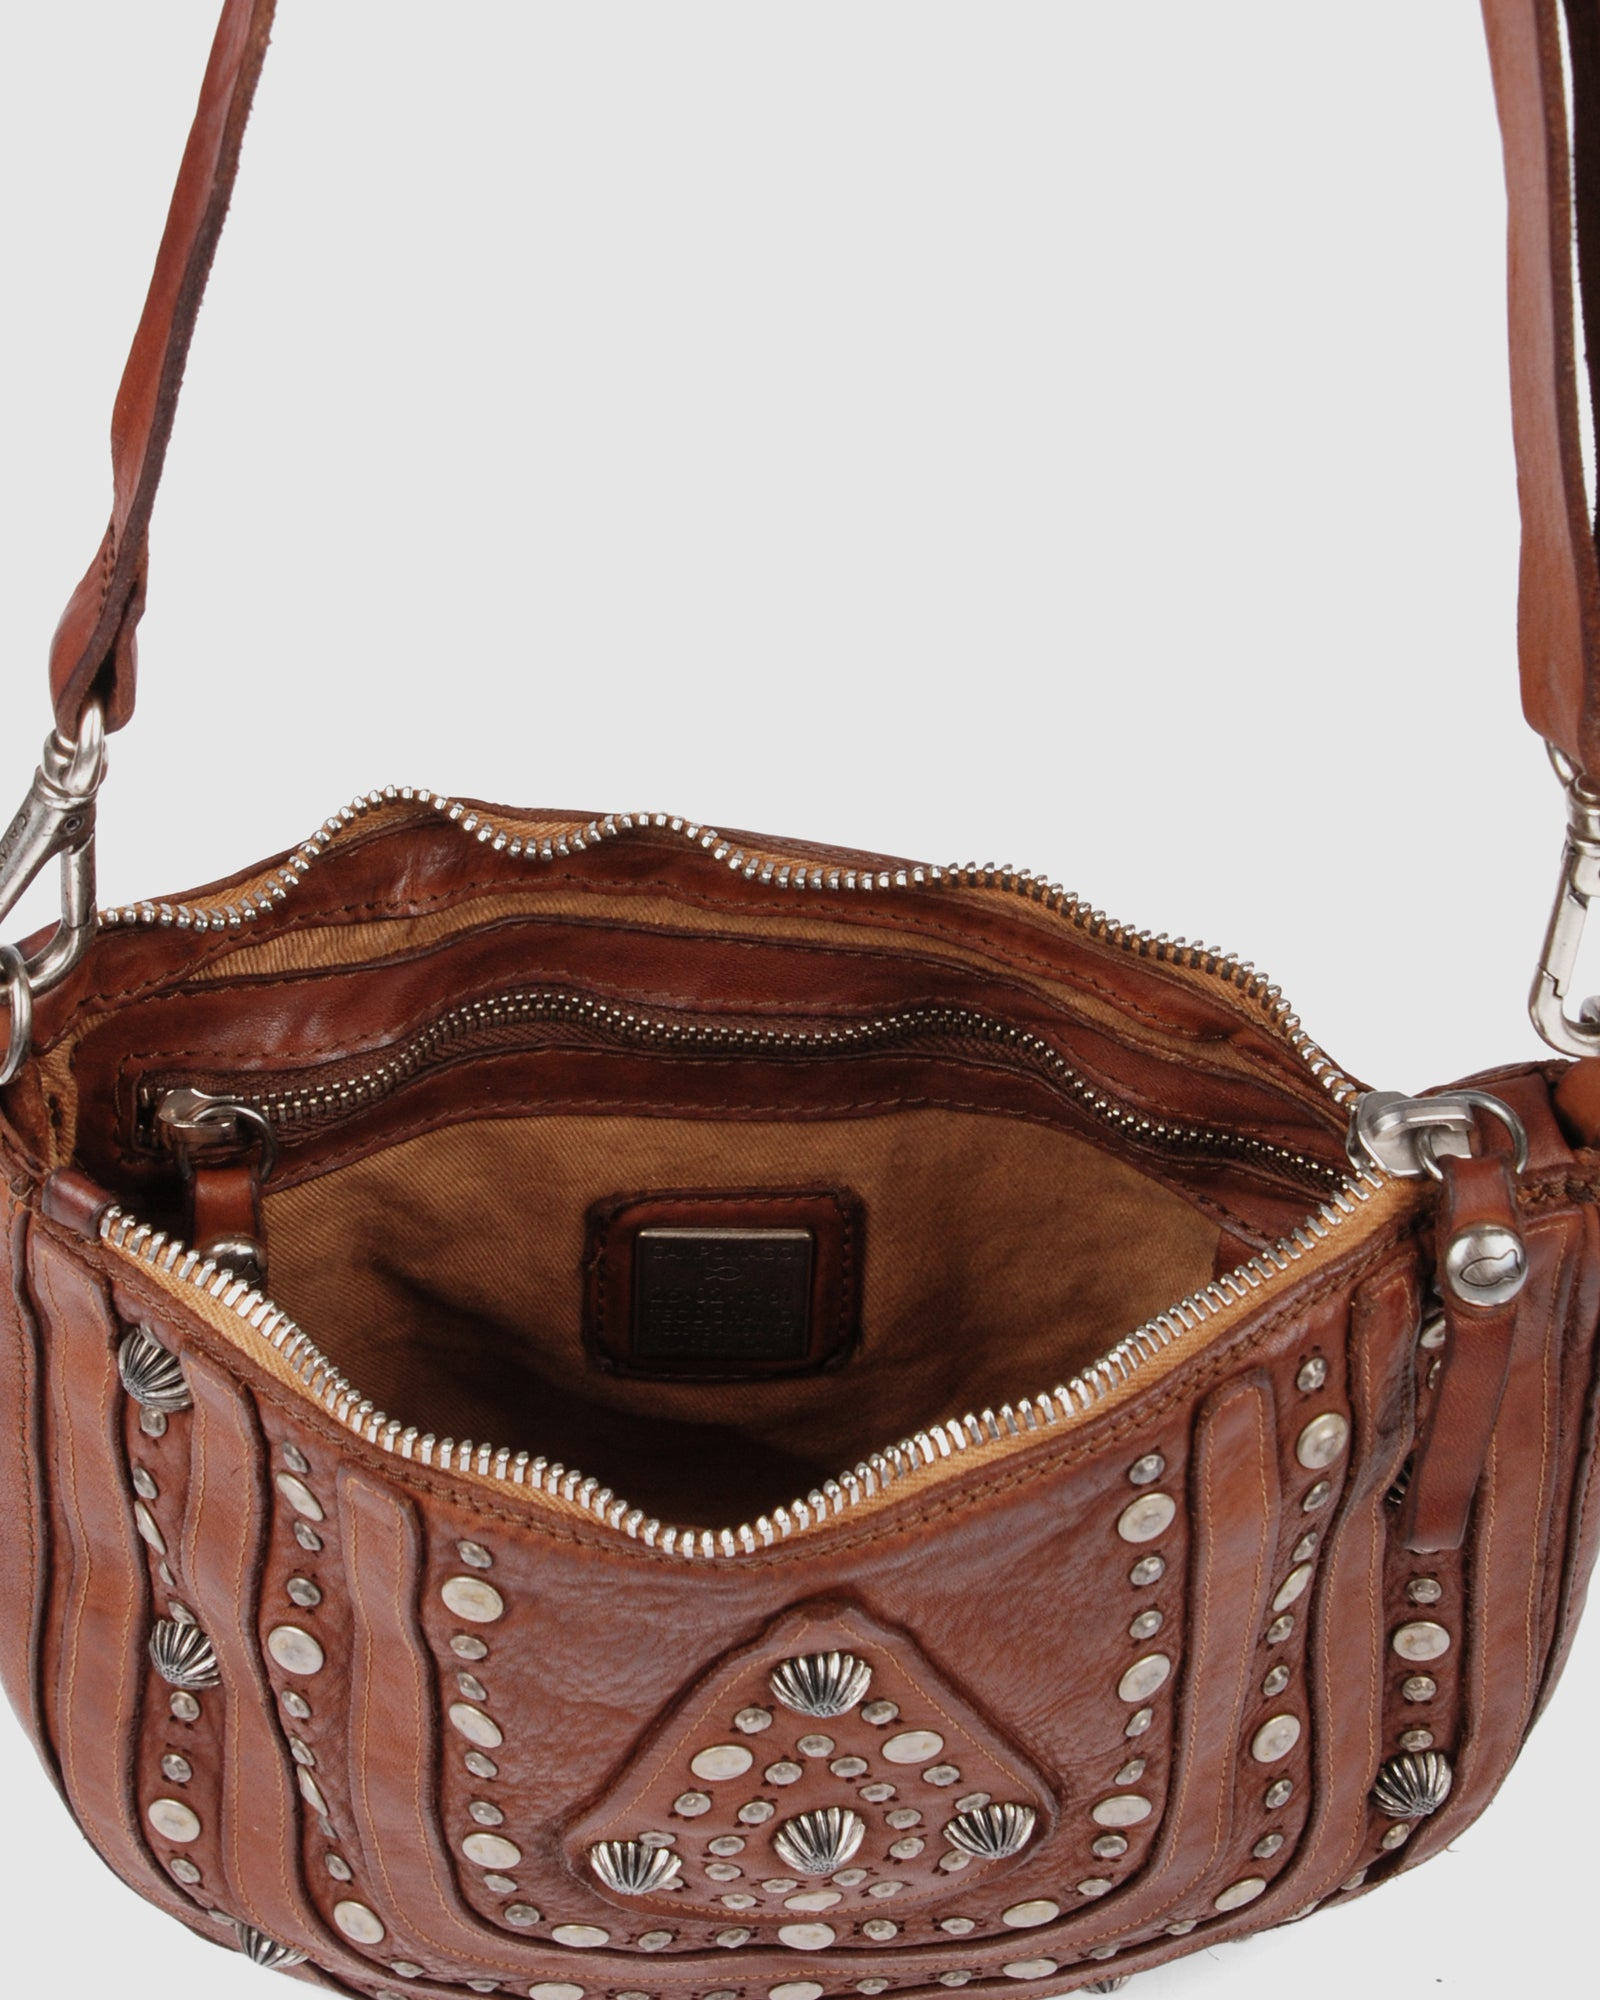 CAMPOMAGGI VERONA LARGE CROSS BODY BAG COGNAC LEATHER